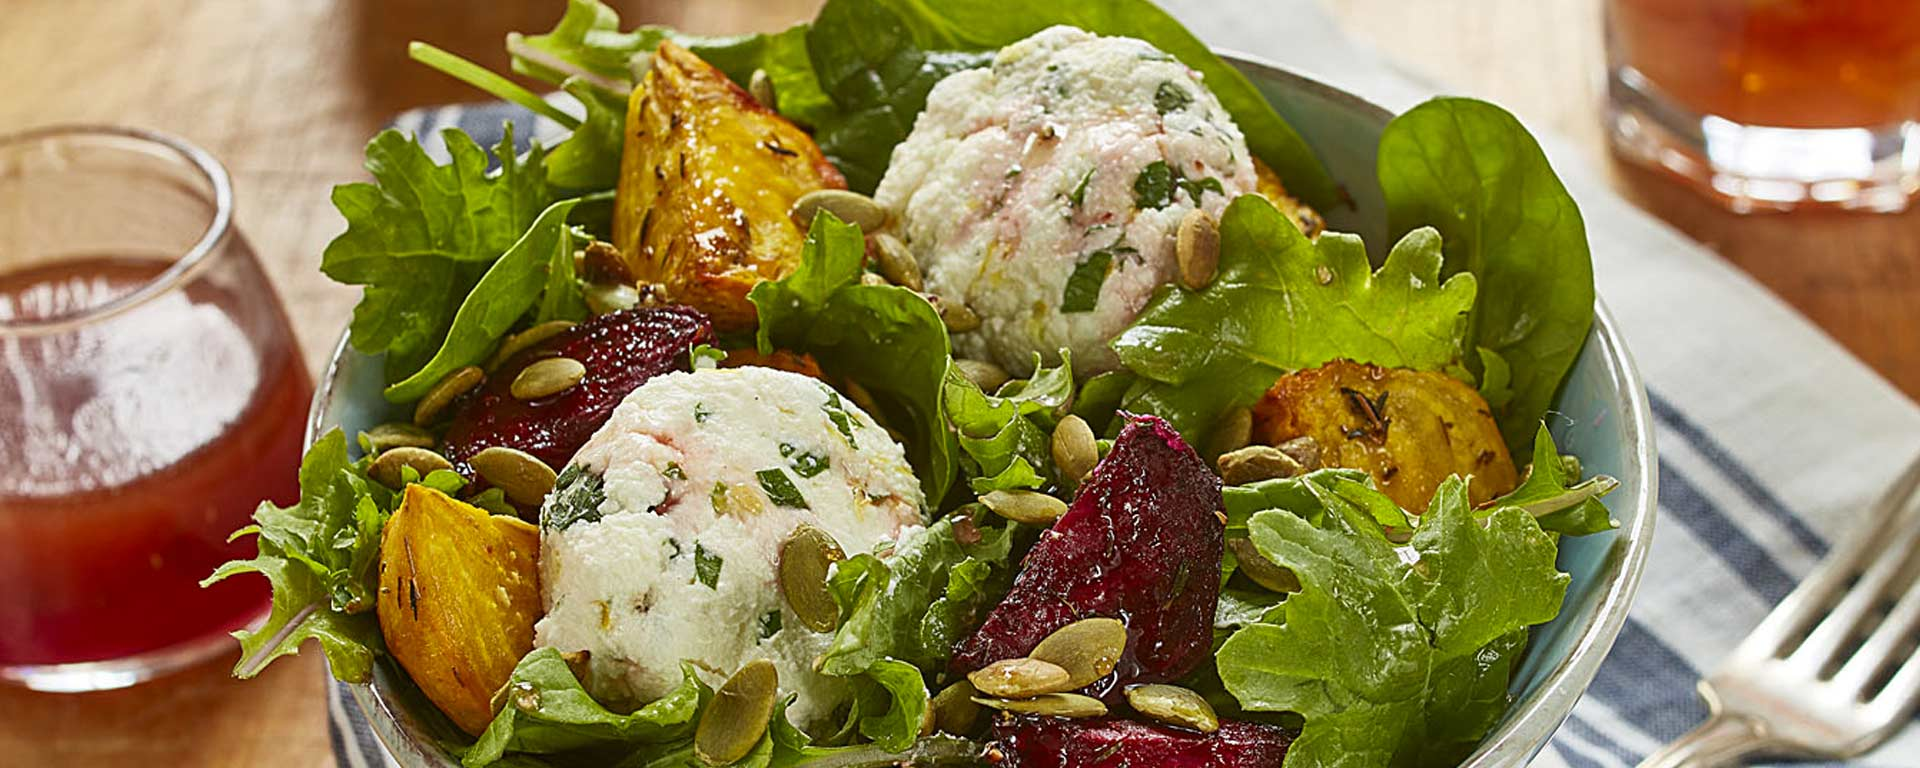 Photo for - Roasted Beets with Herbed Ricotta and Pumpkin Seeds